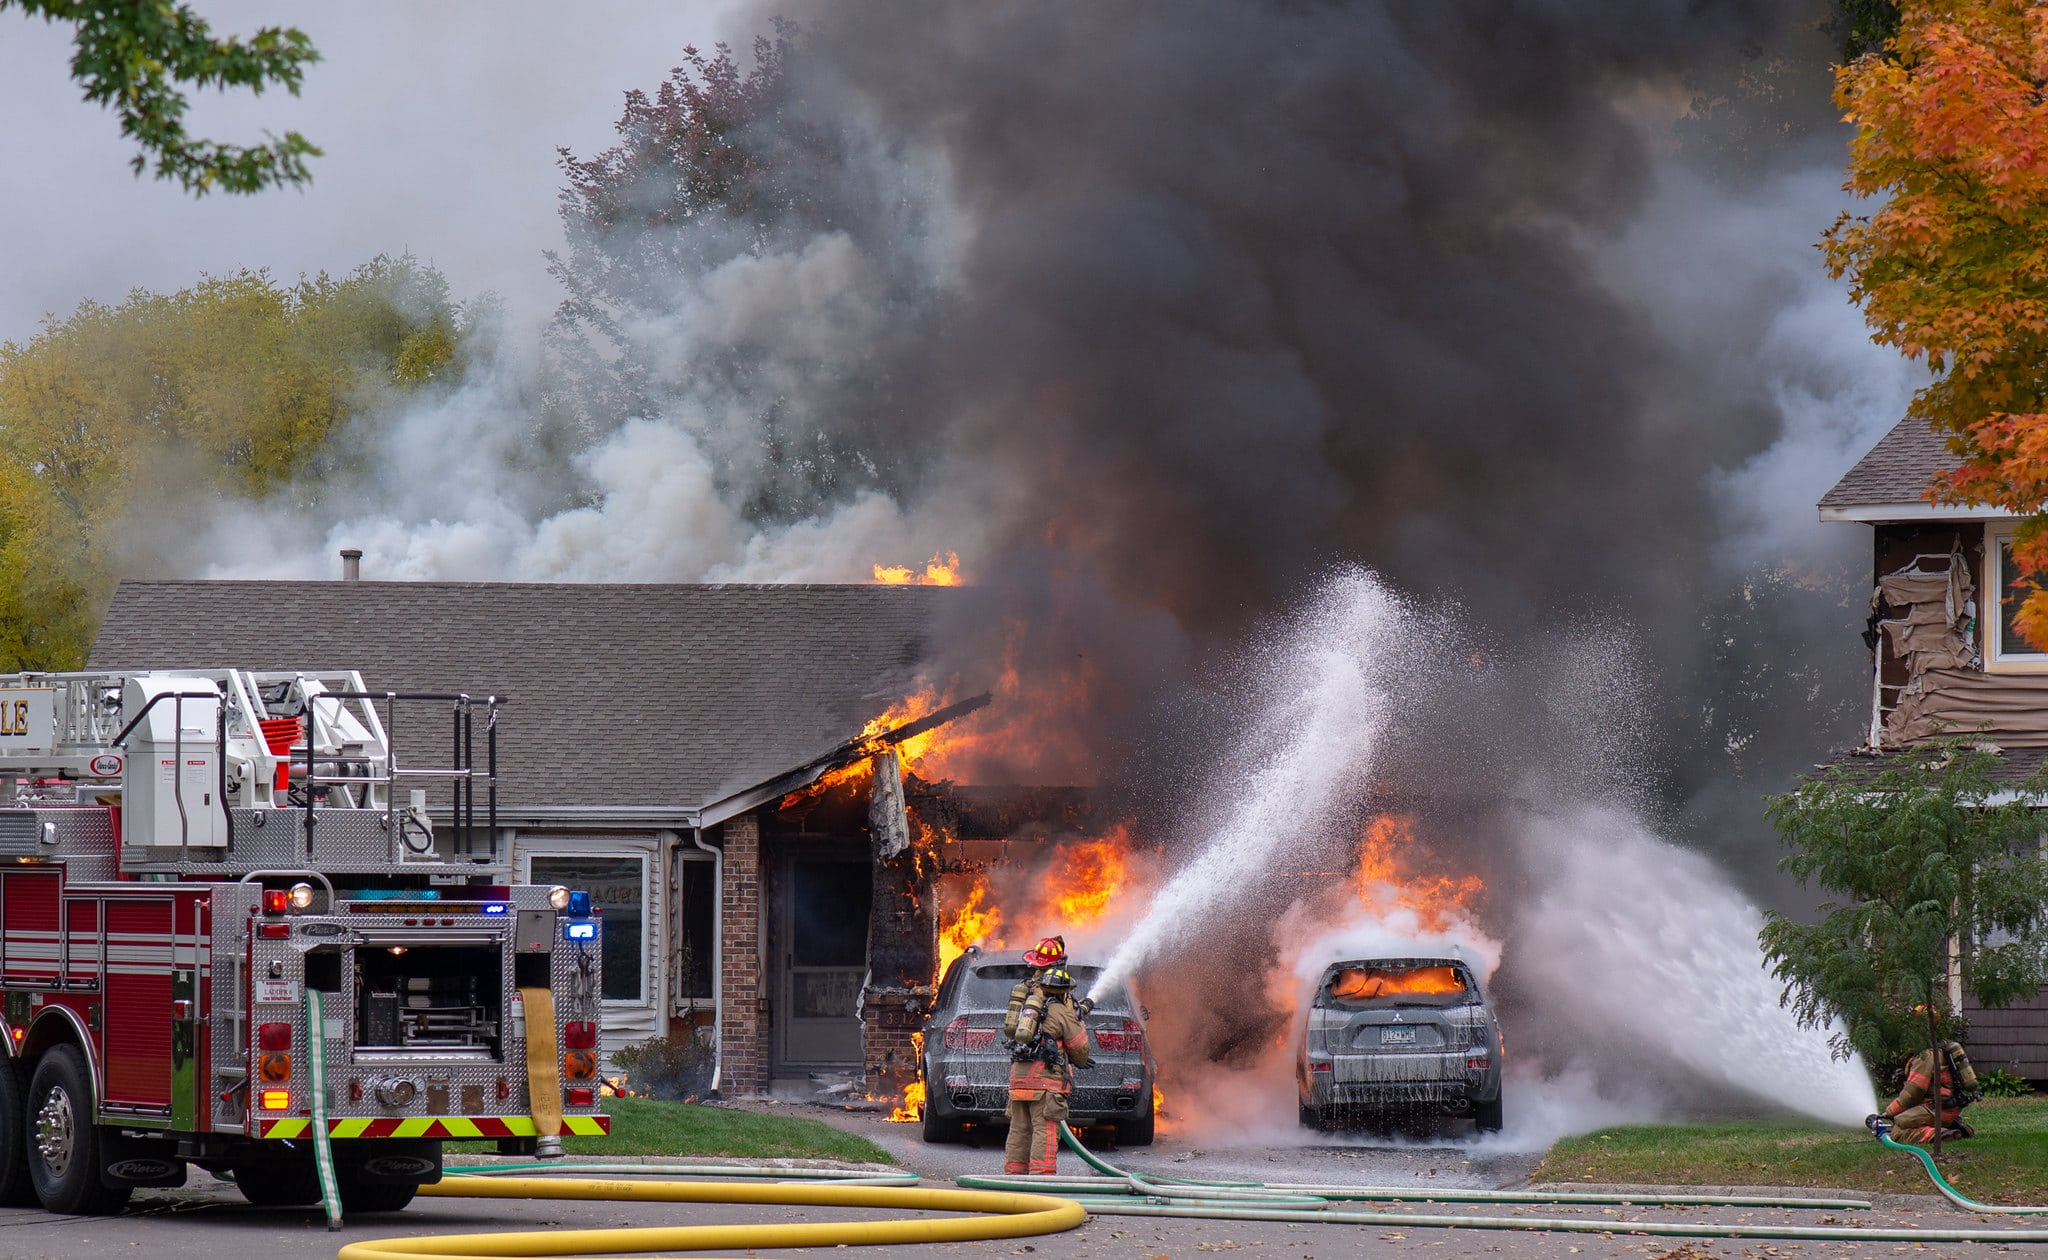 House Fire Checklist: What to do After a House Fire